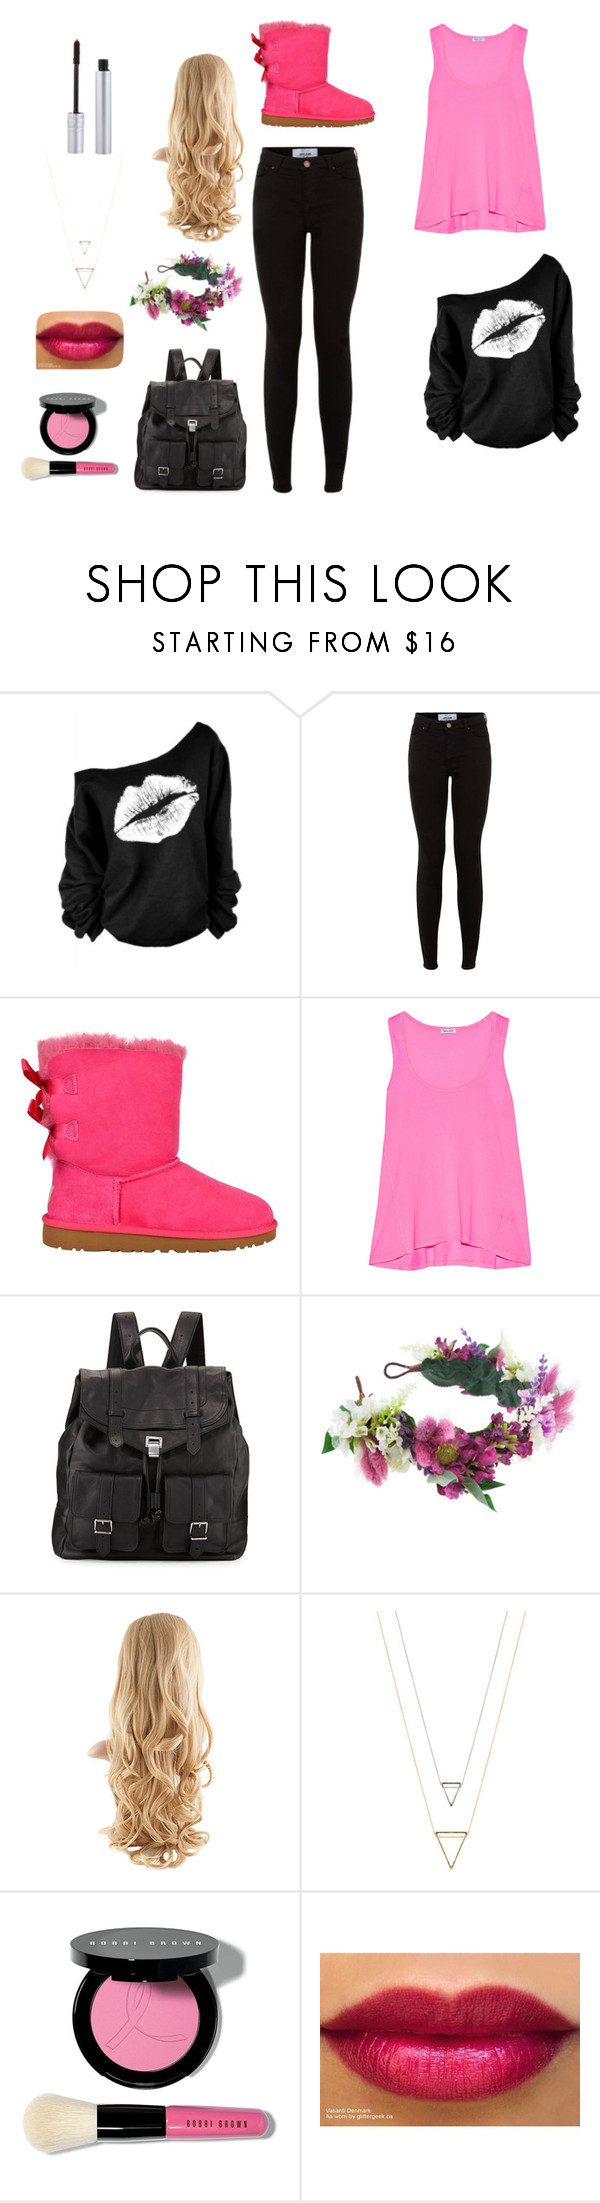 """pink and black"" by peterson-johannah on Polyvore featuring UGG Australia, Splendid, Proenza Schouler, Rock 'N Rose, Bobbi Brown Cosmetics, T. LeClerc, uggs and polyvorefashion"